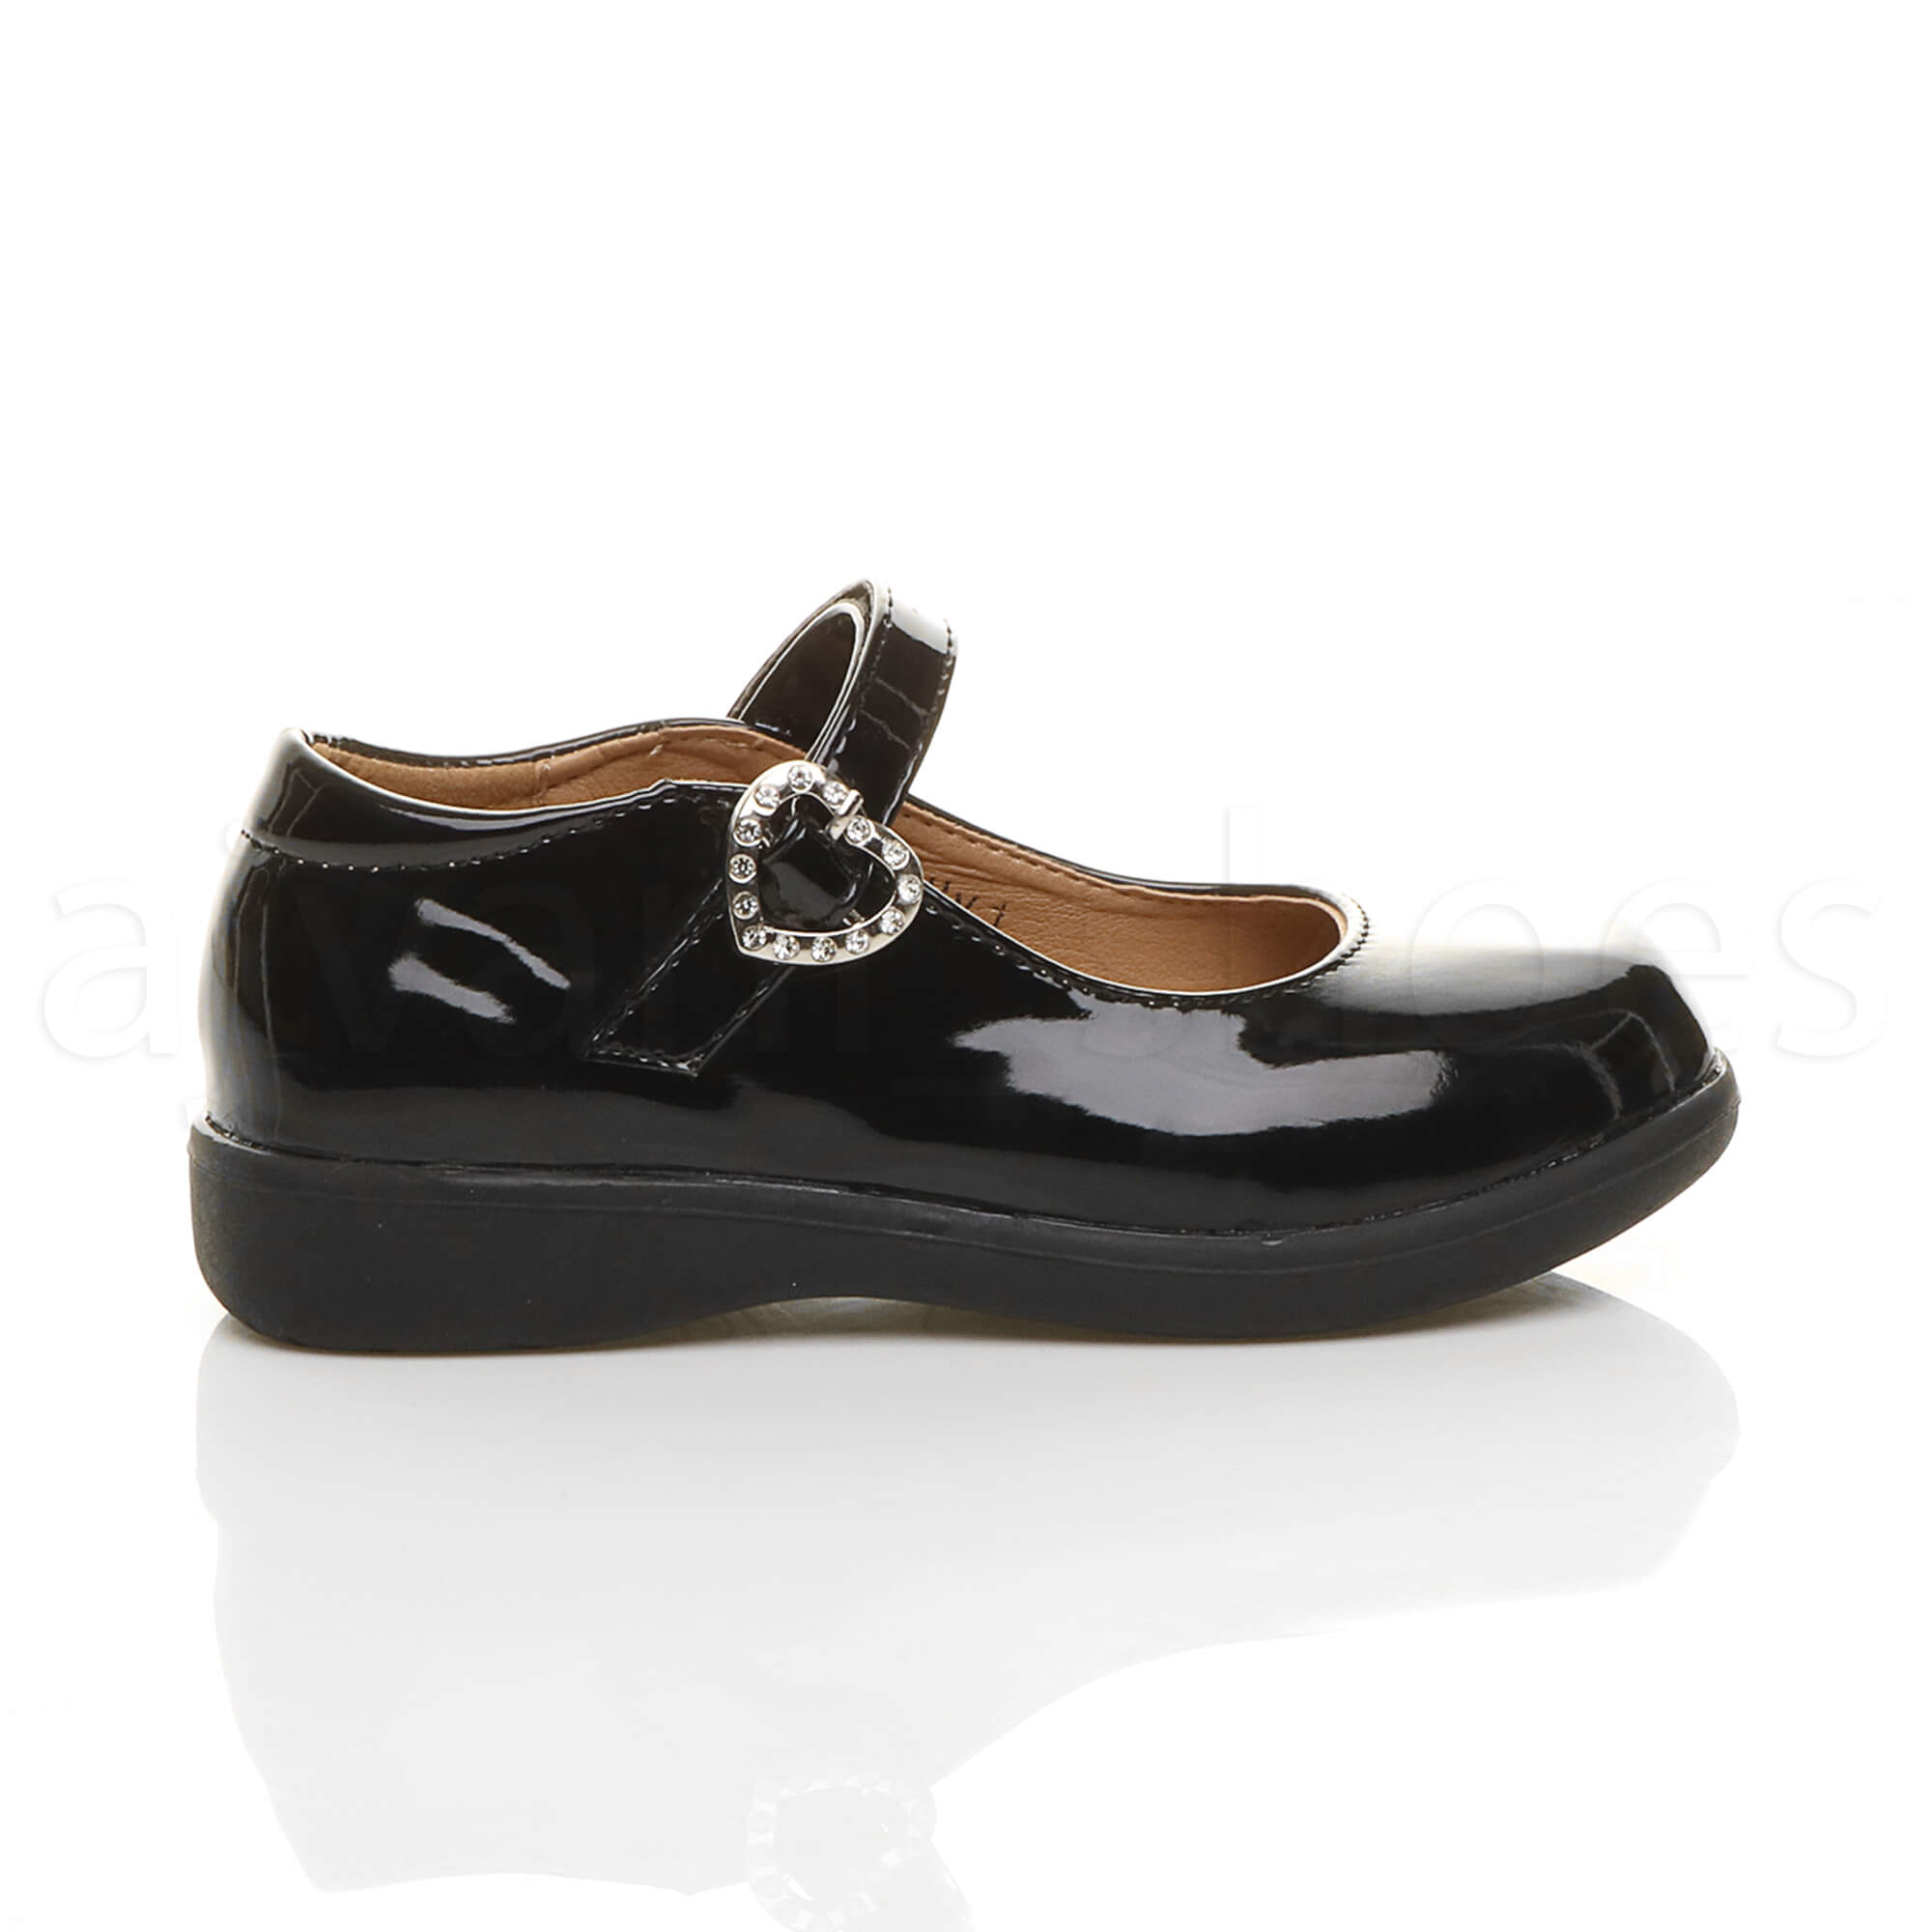 GIRLS KIDS CHILDRENS FLAT LOW HEEL MARY JANE STRAP BUCKLE SMART SHOES SIZE